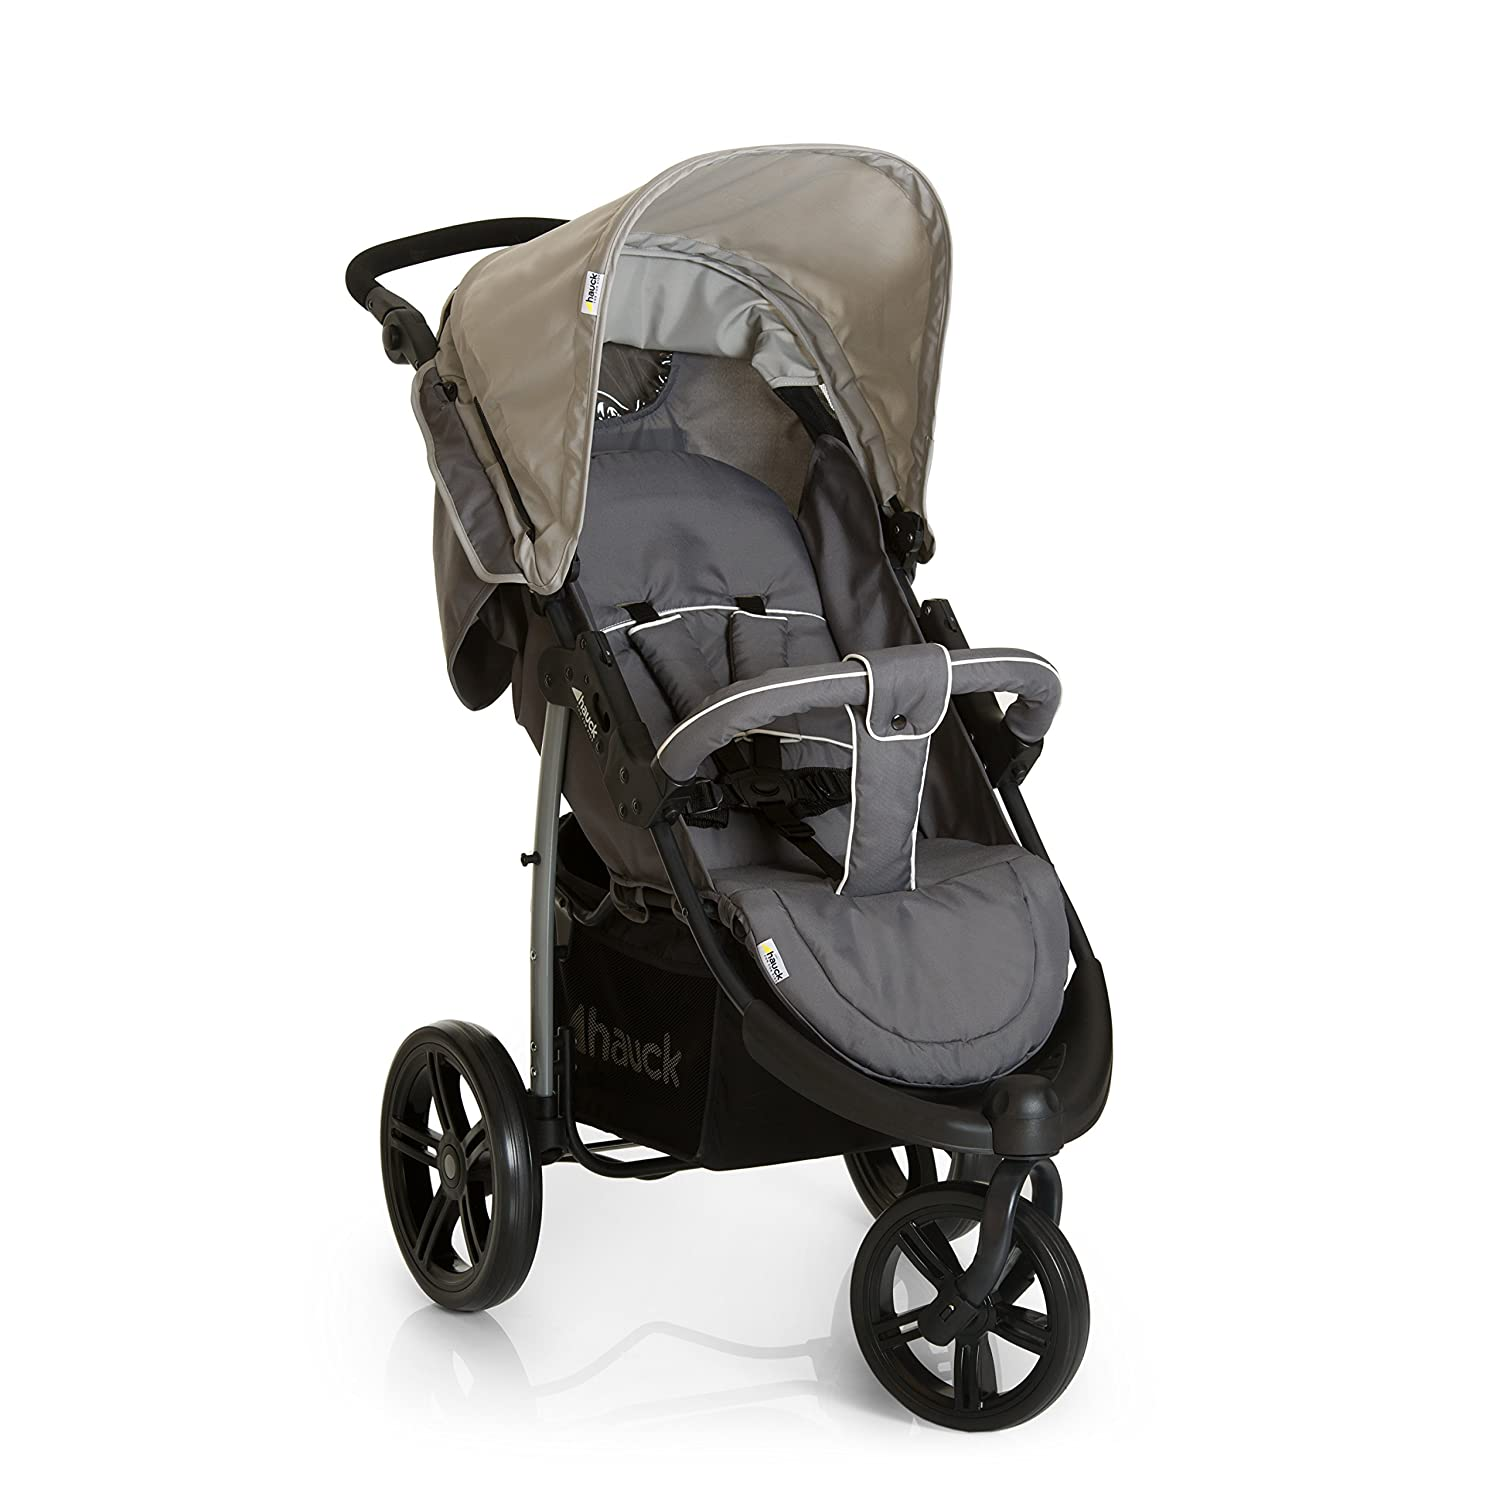 Hauck Viper SLX From Birth to 22Kg Three Wheel Stroller with raincover, Grey H-31040